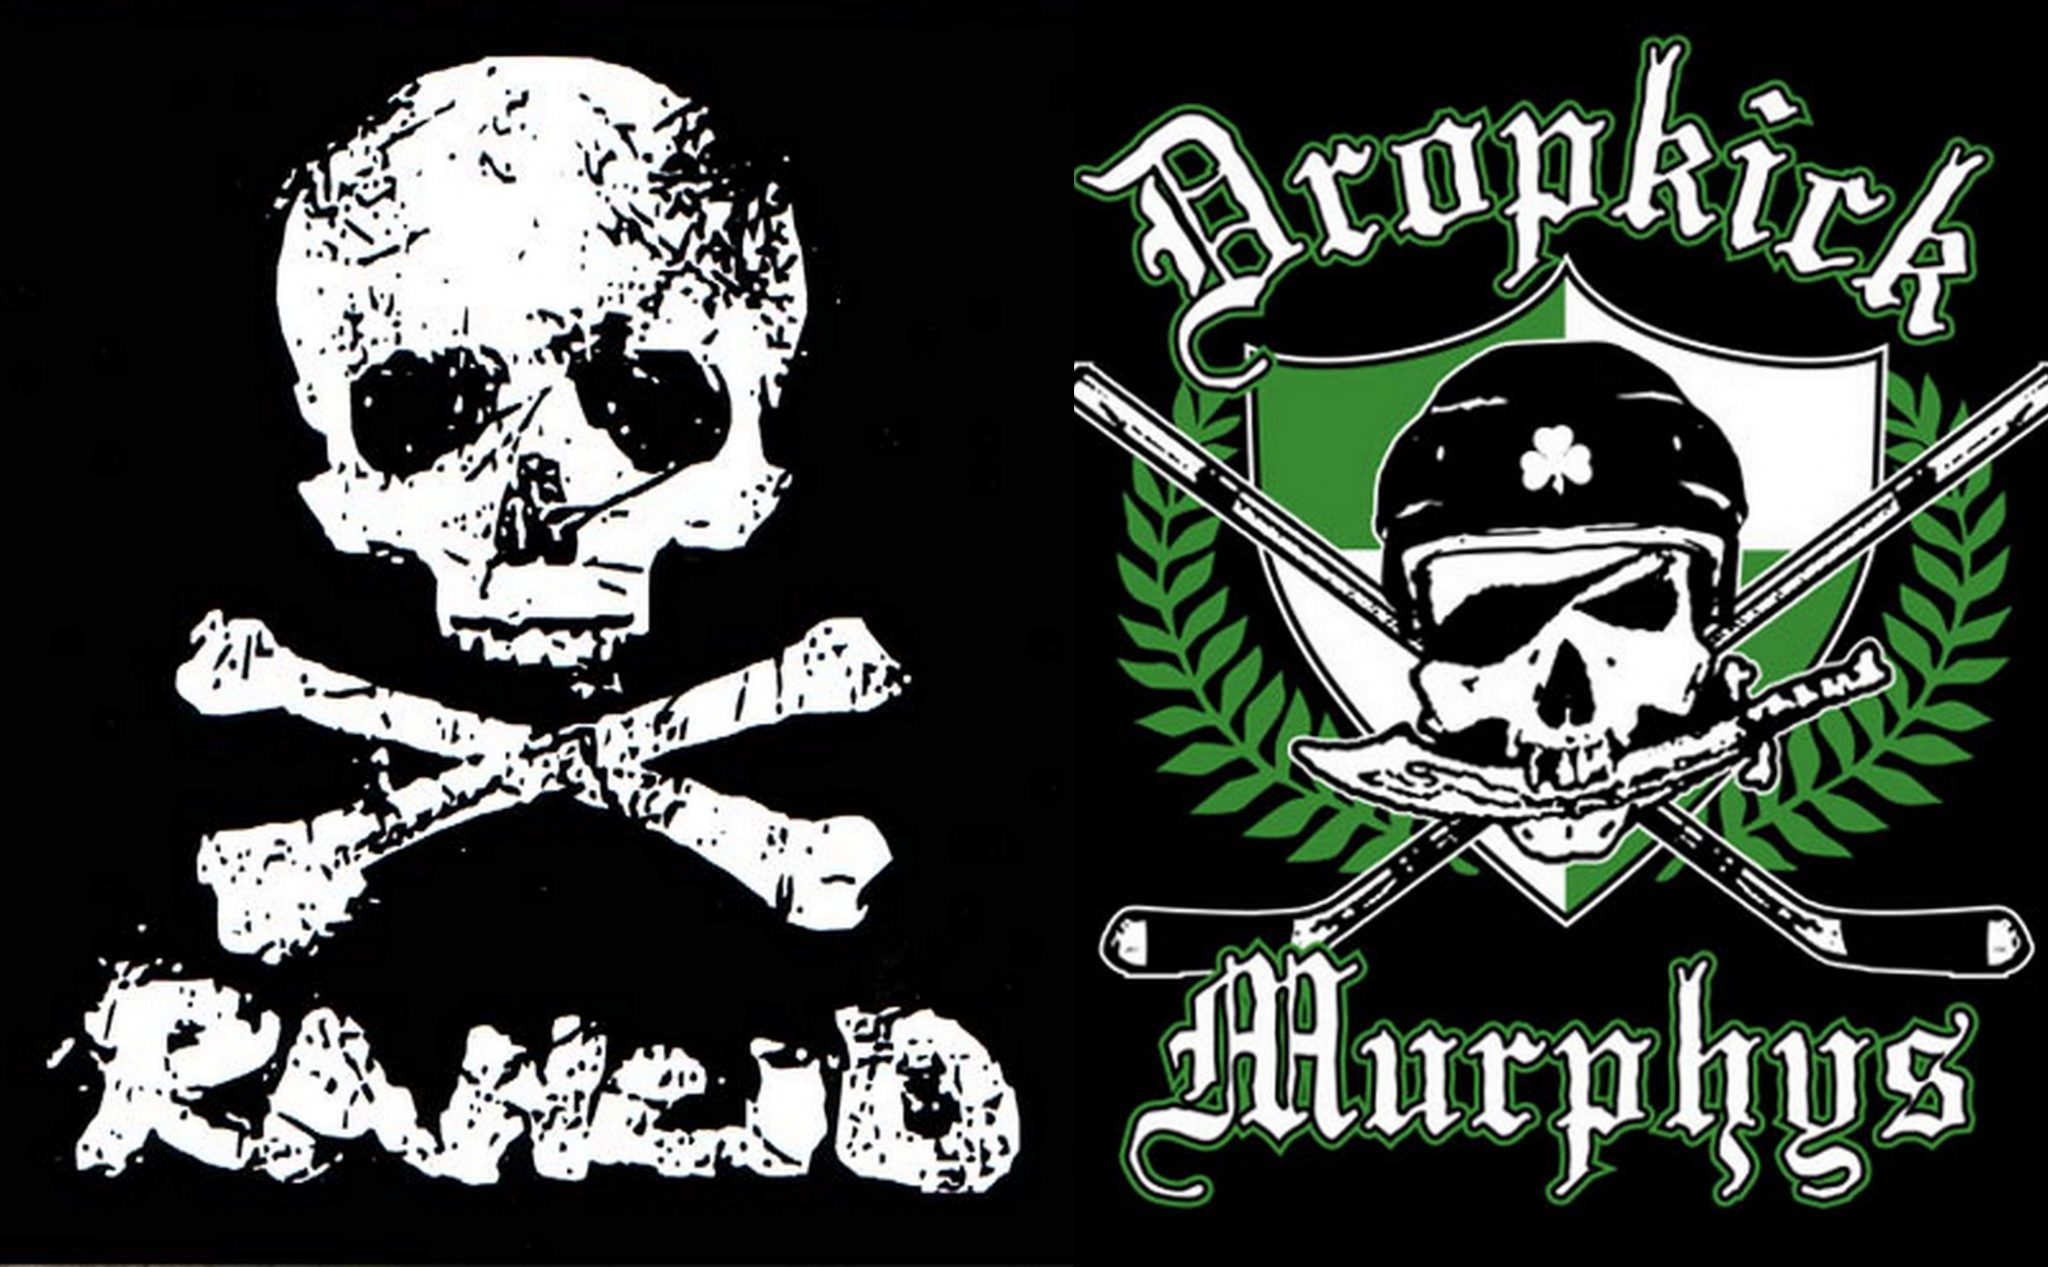 rancid and dropkick murphys are coming to san diego 91x fm